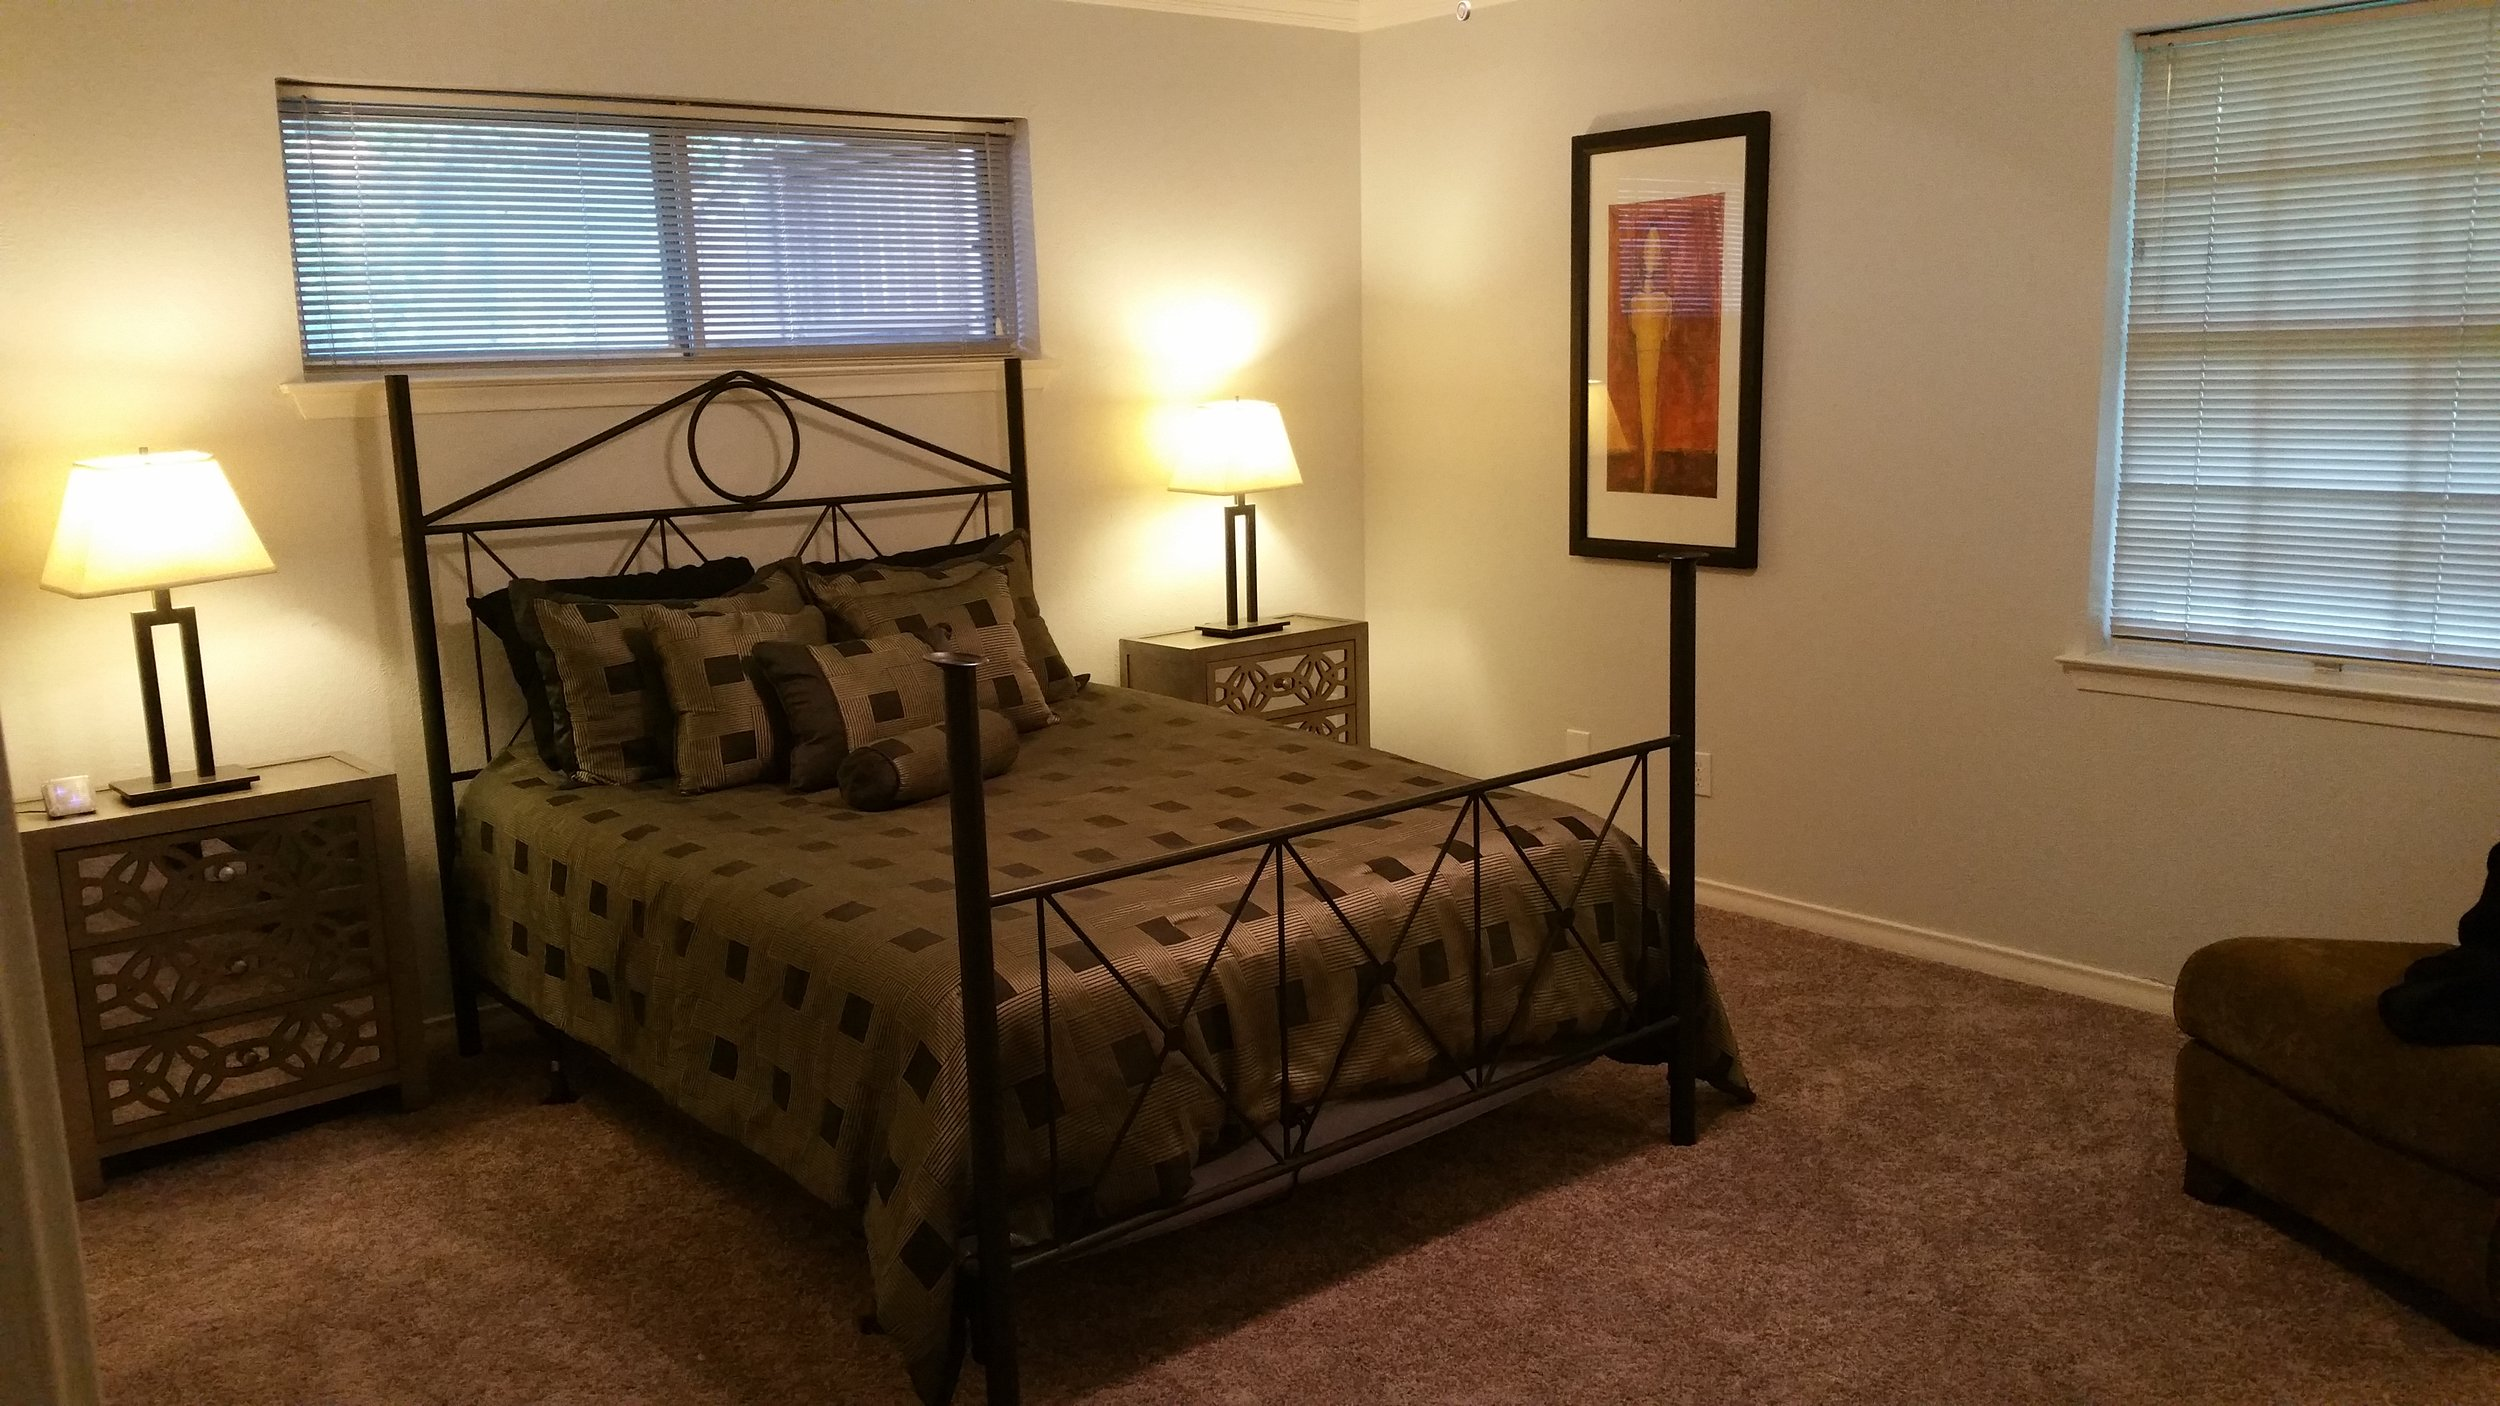 Regular Consumer Photo that does not show the entire room